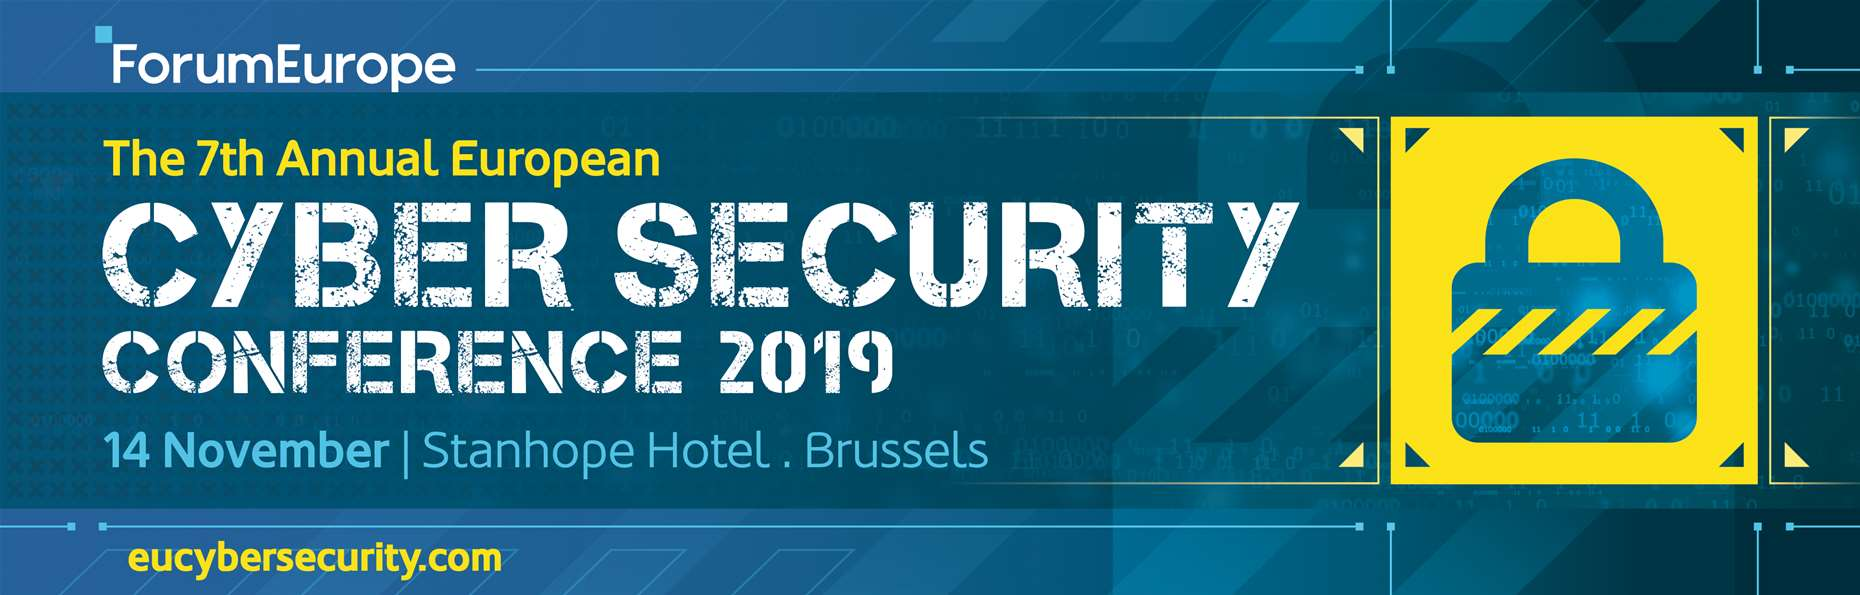 The 7th Annual European Cyber Security Conference